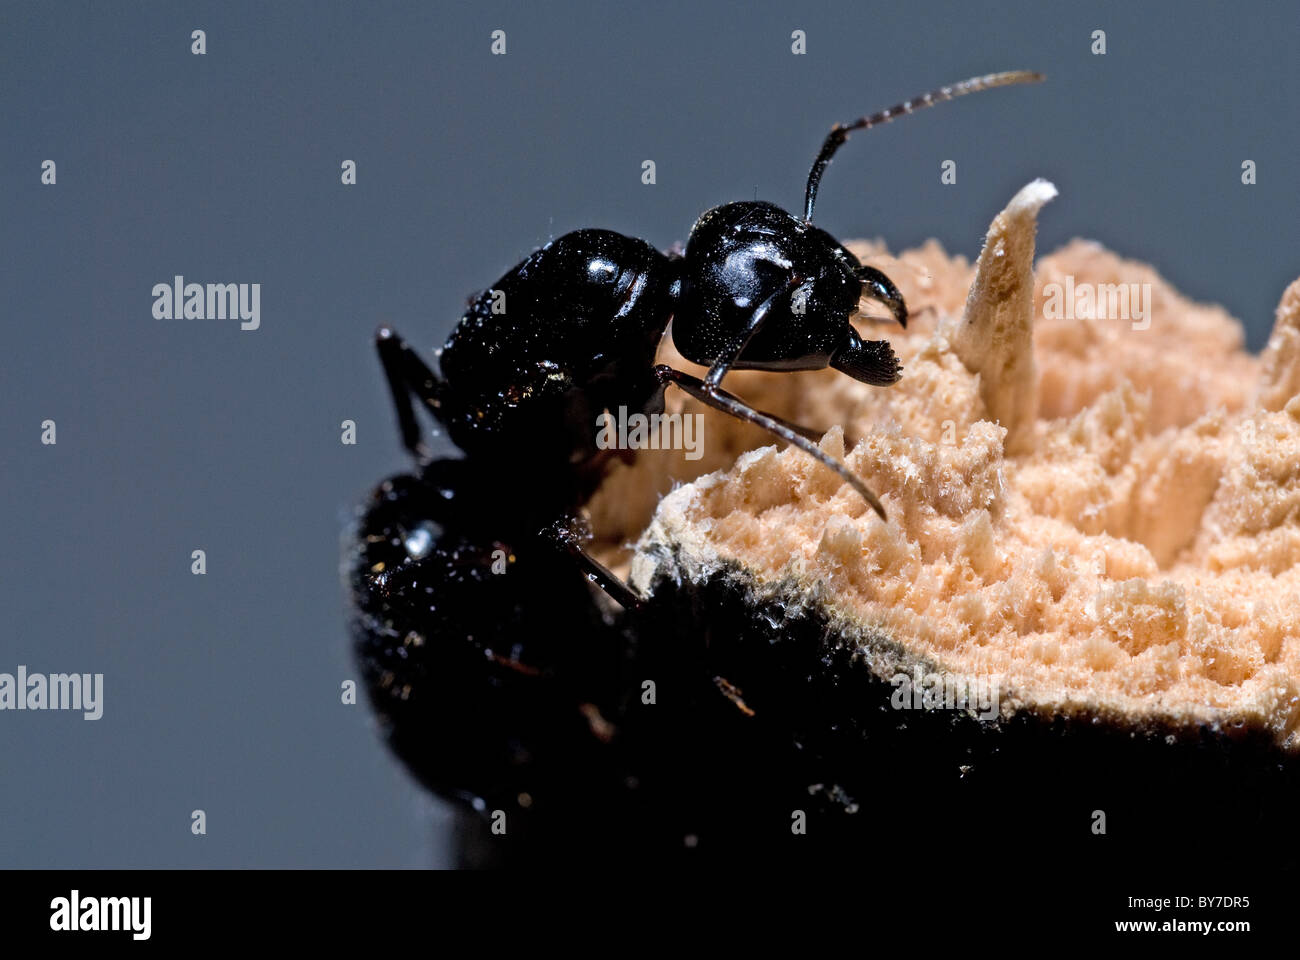 Black Carpender Ant (Camponotus pennslyvanicus) 1/4-1/2' (6-13 mm) - Stock Image